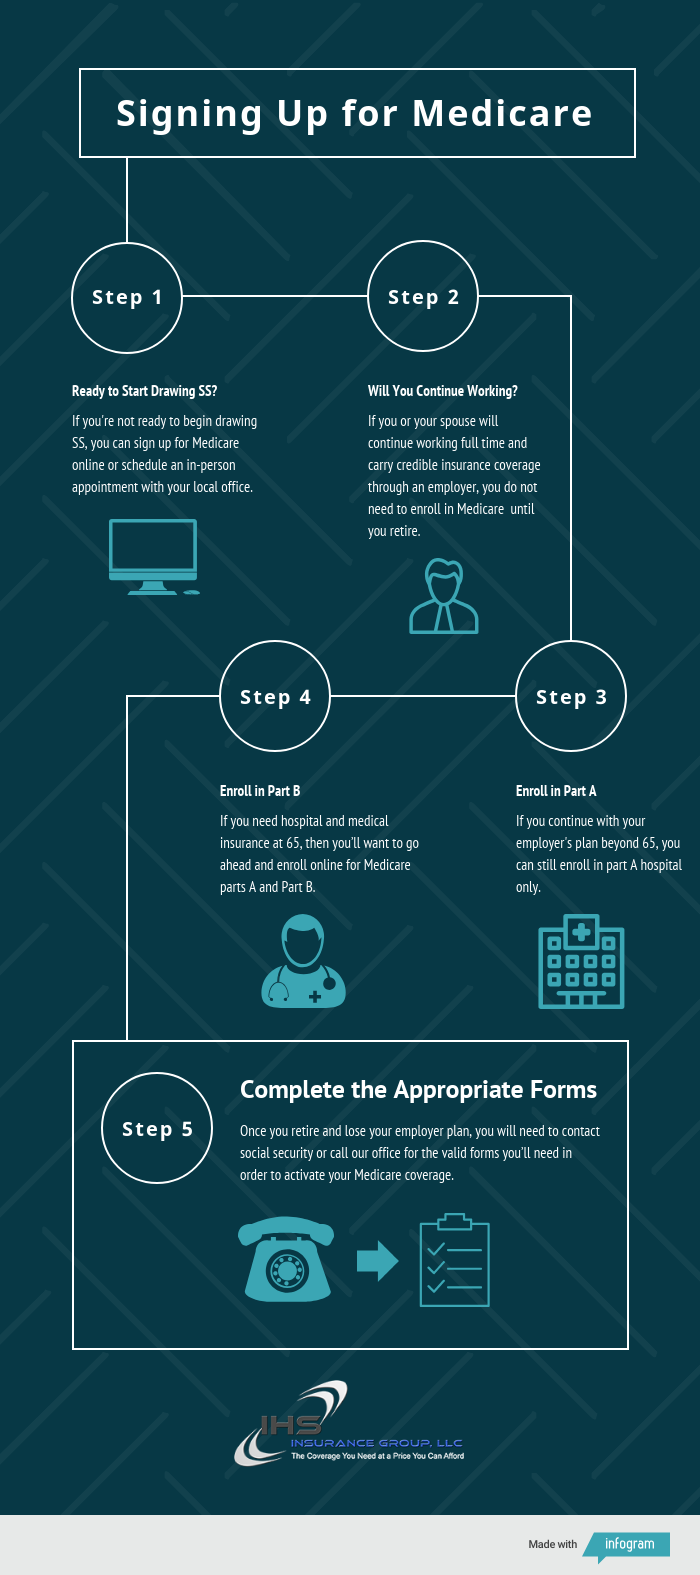 You can enroll in Medicare using these 5 steps.